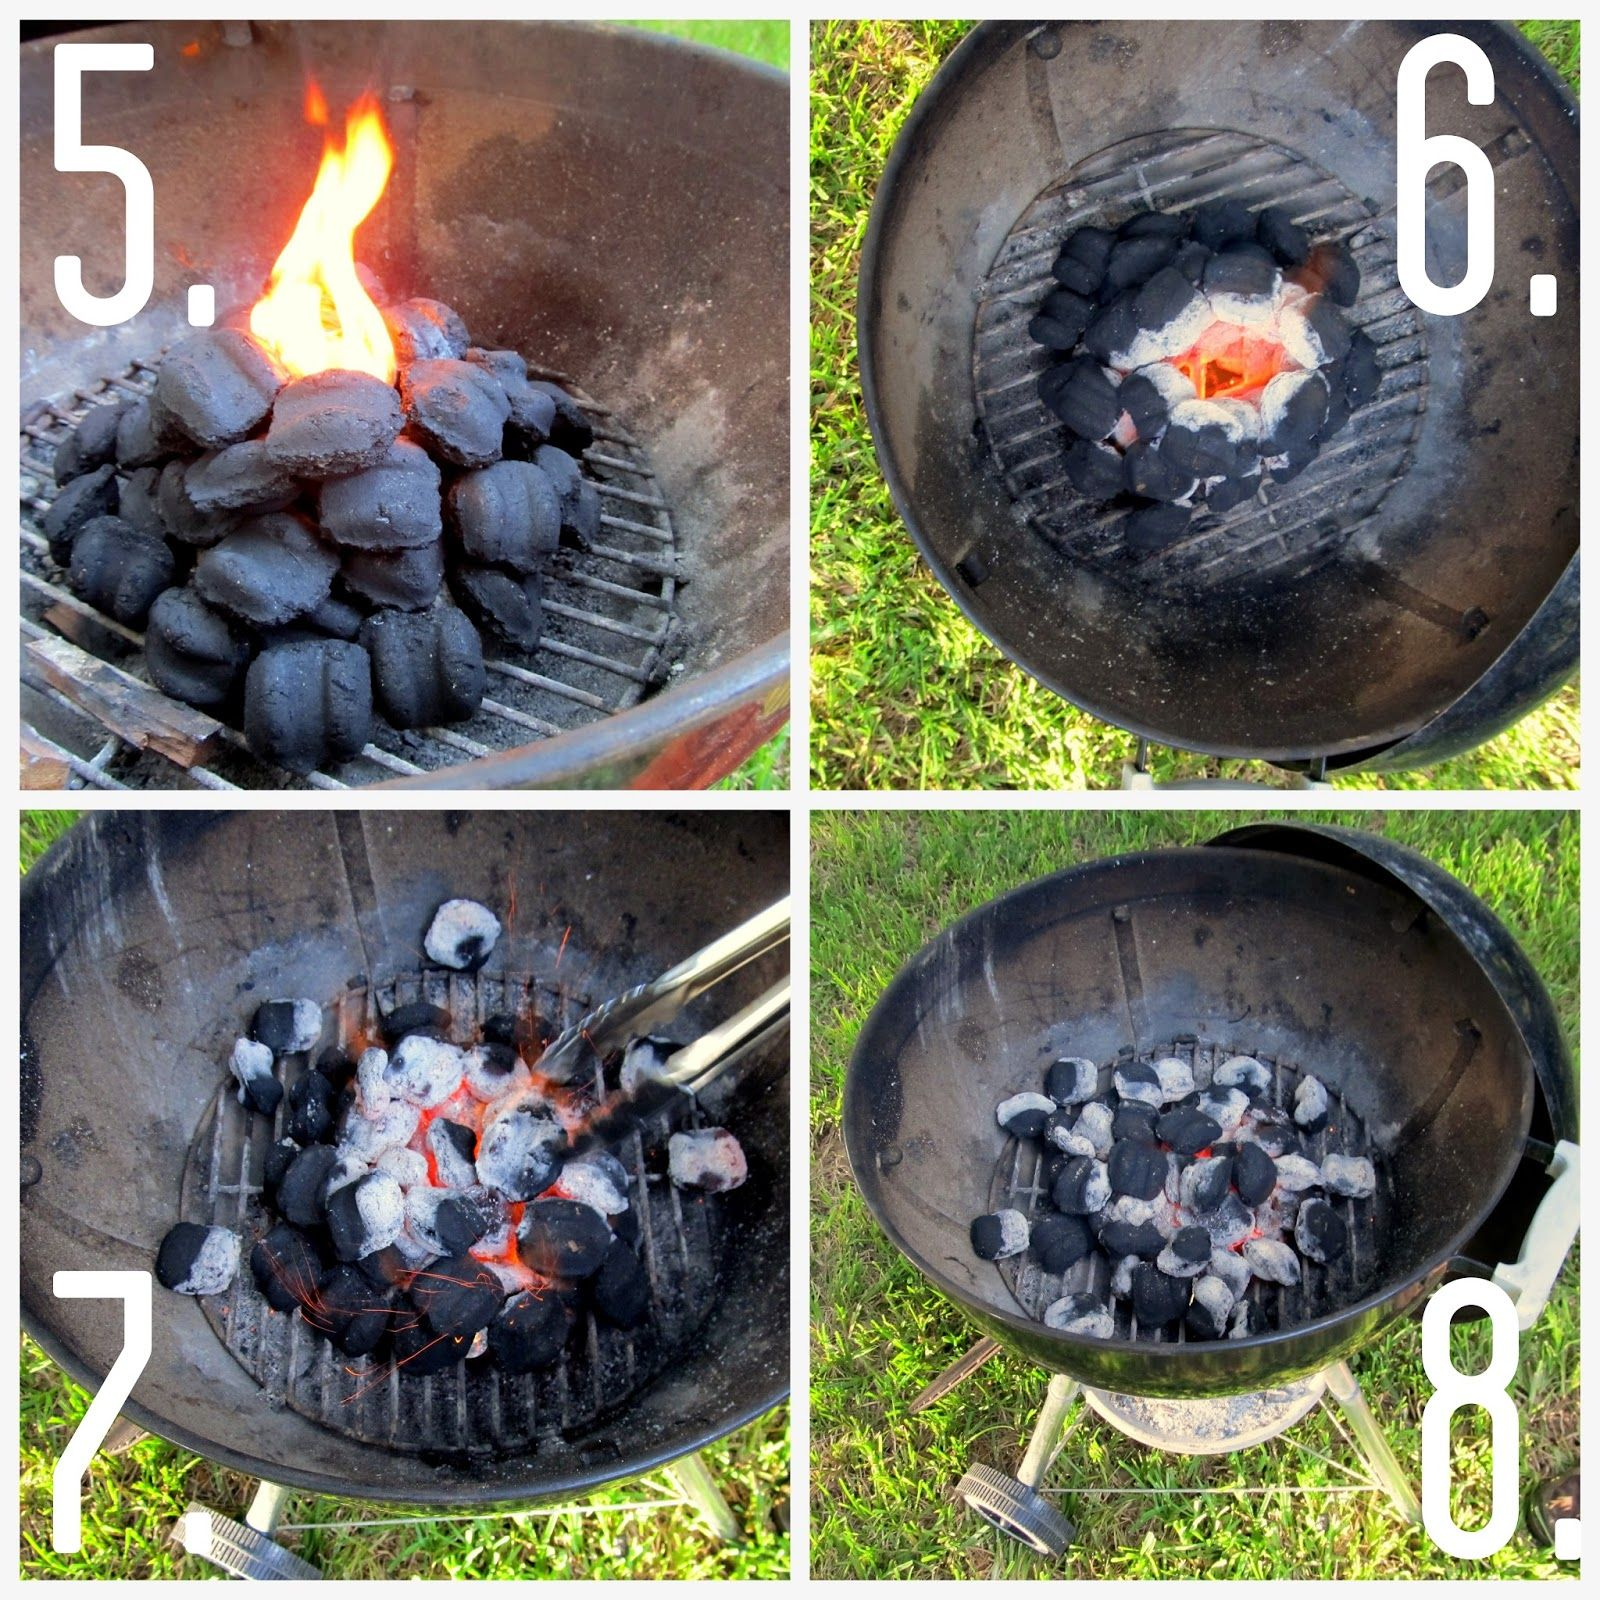 How To Light Charcoal Grill 2 Jpg 1 600 1 600 Pixels Best